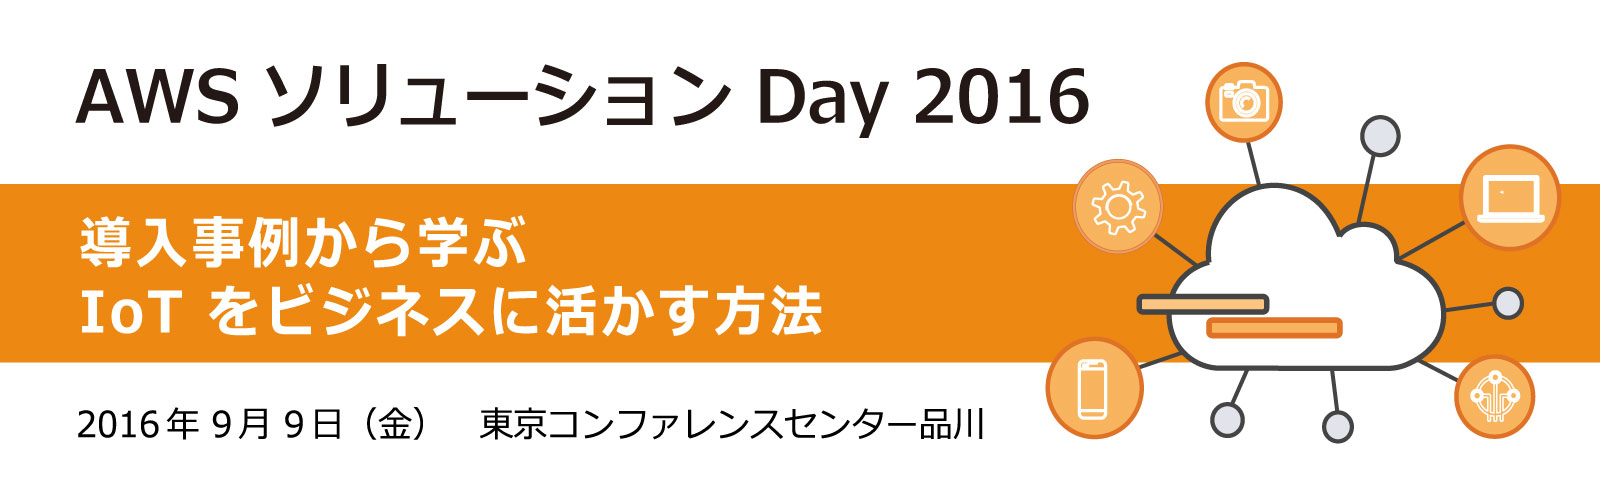 solutionday2016_iot_main